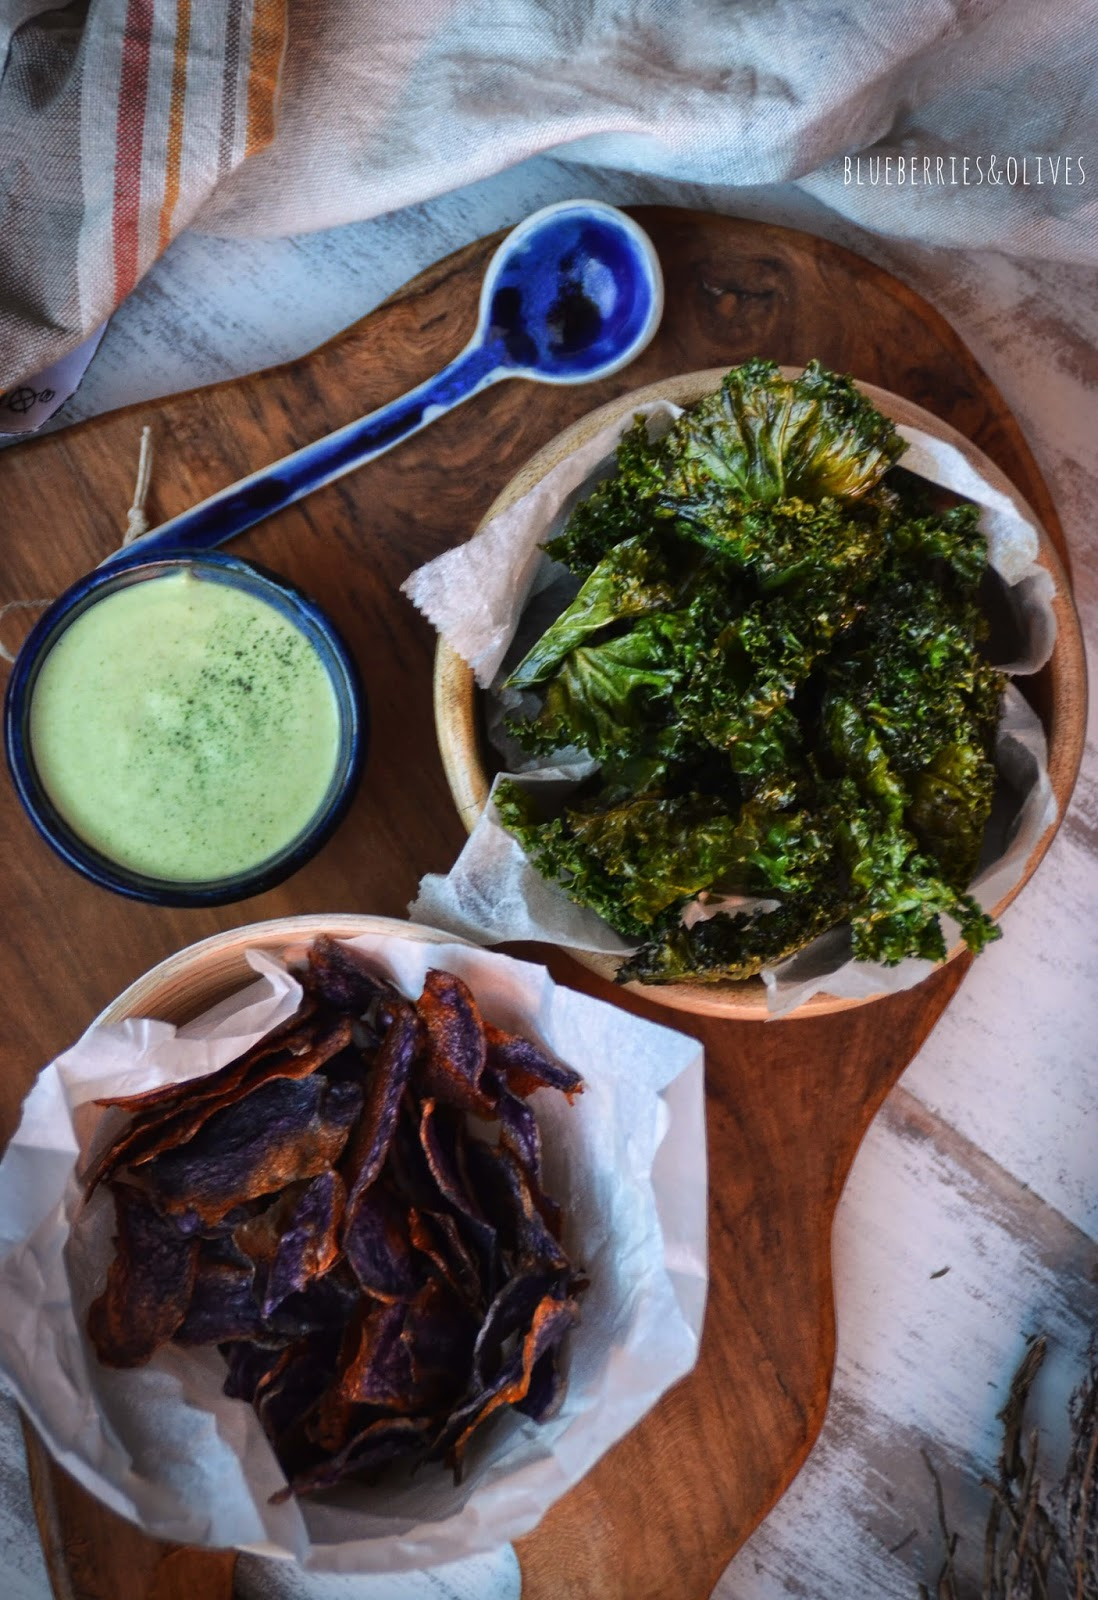 KALE AND PURPLE POTATO CHIPS WITH A WASABI DIP